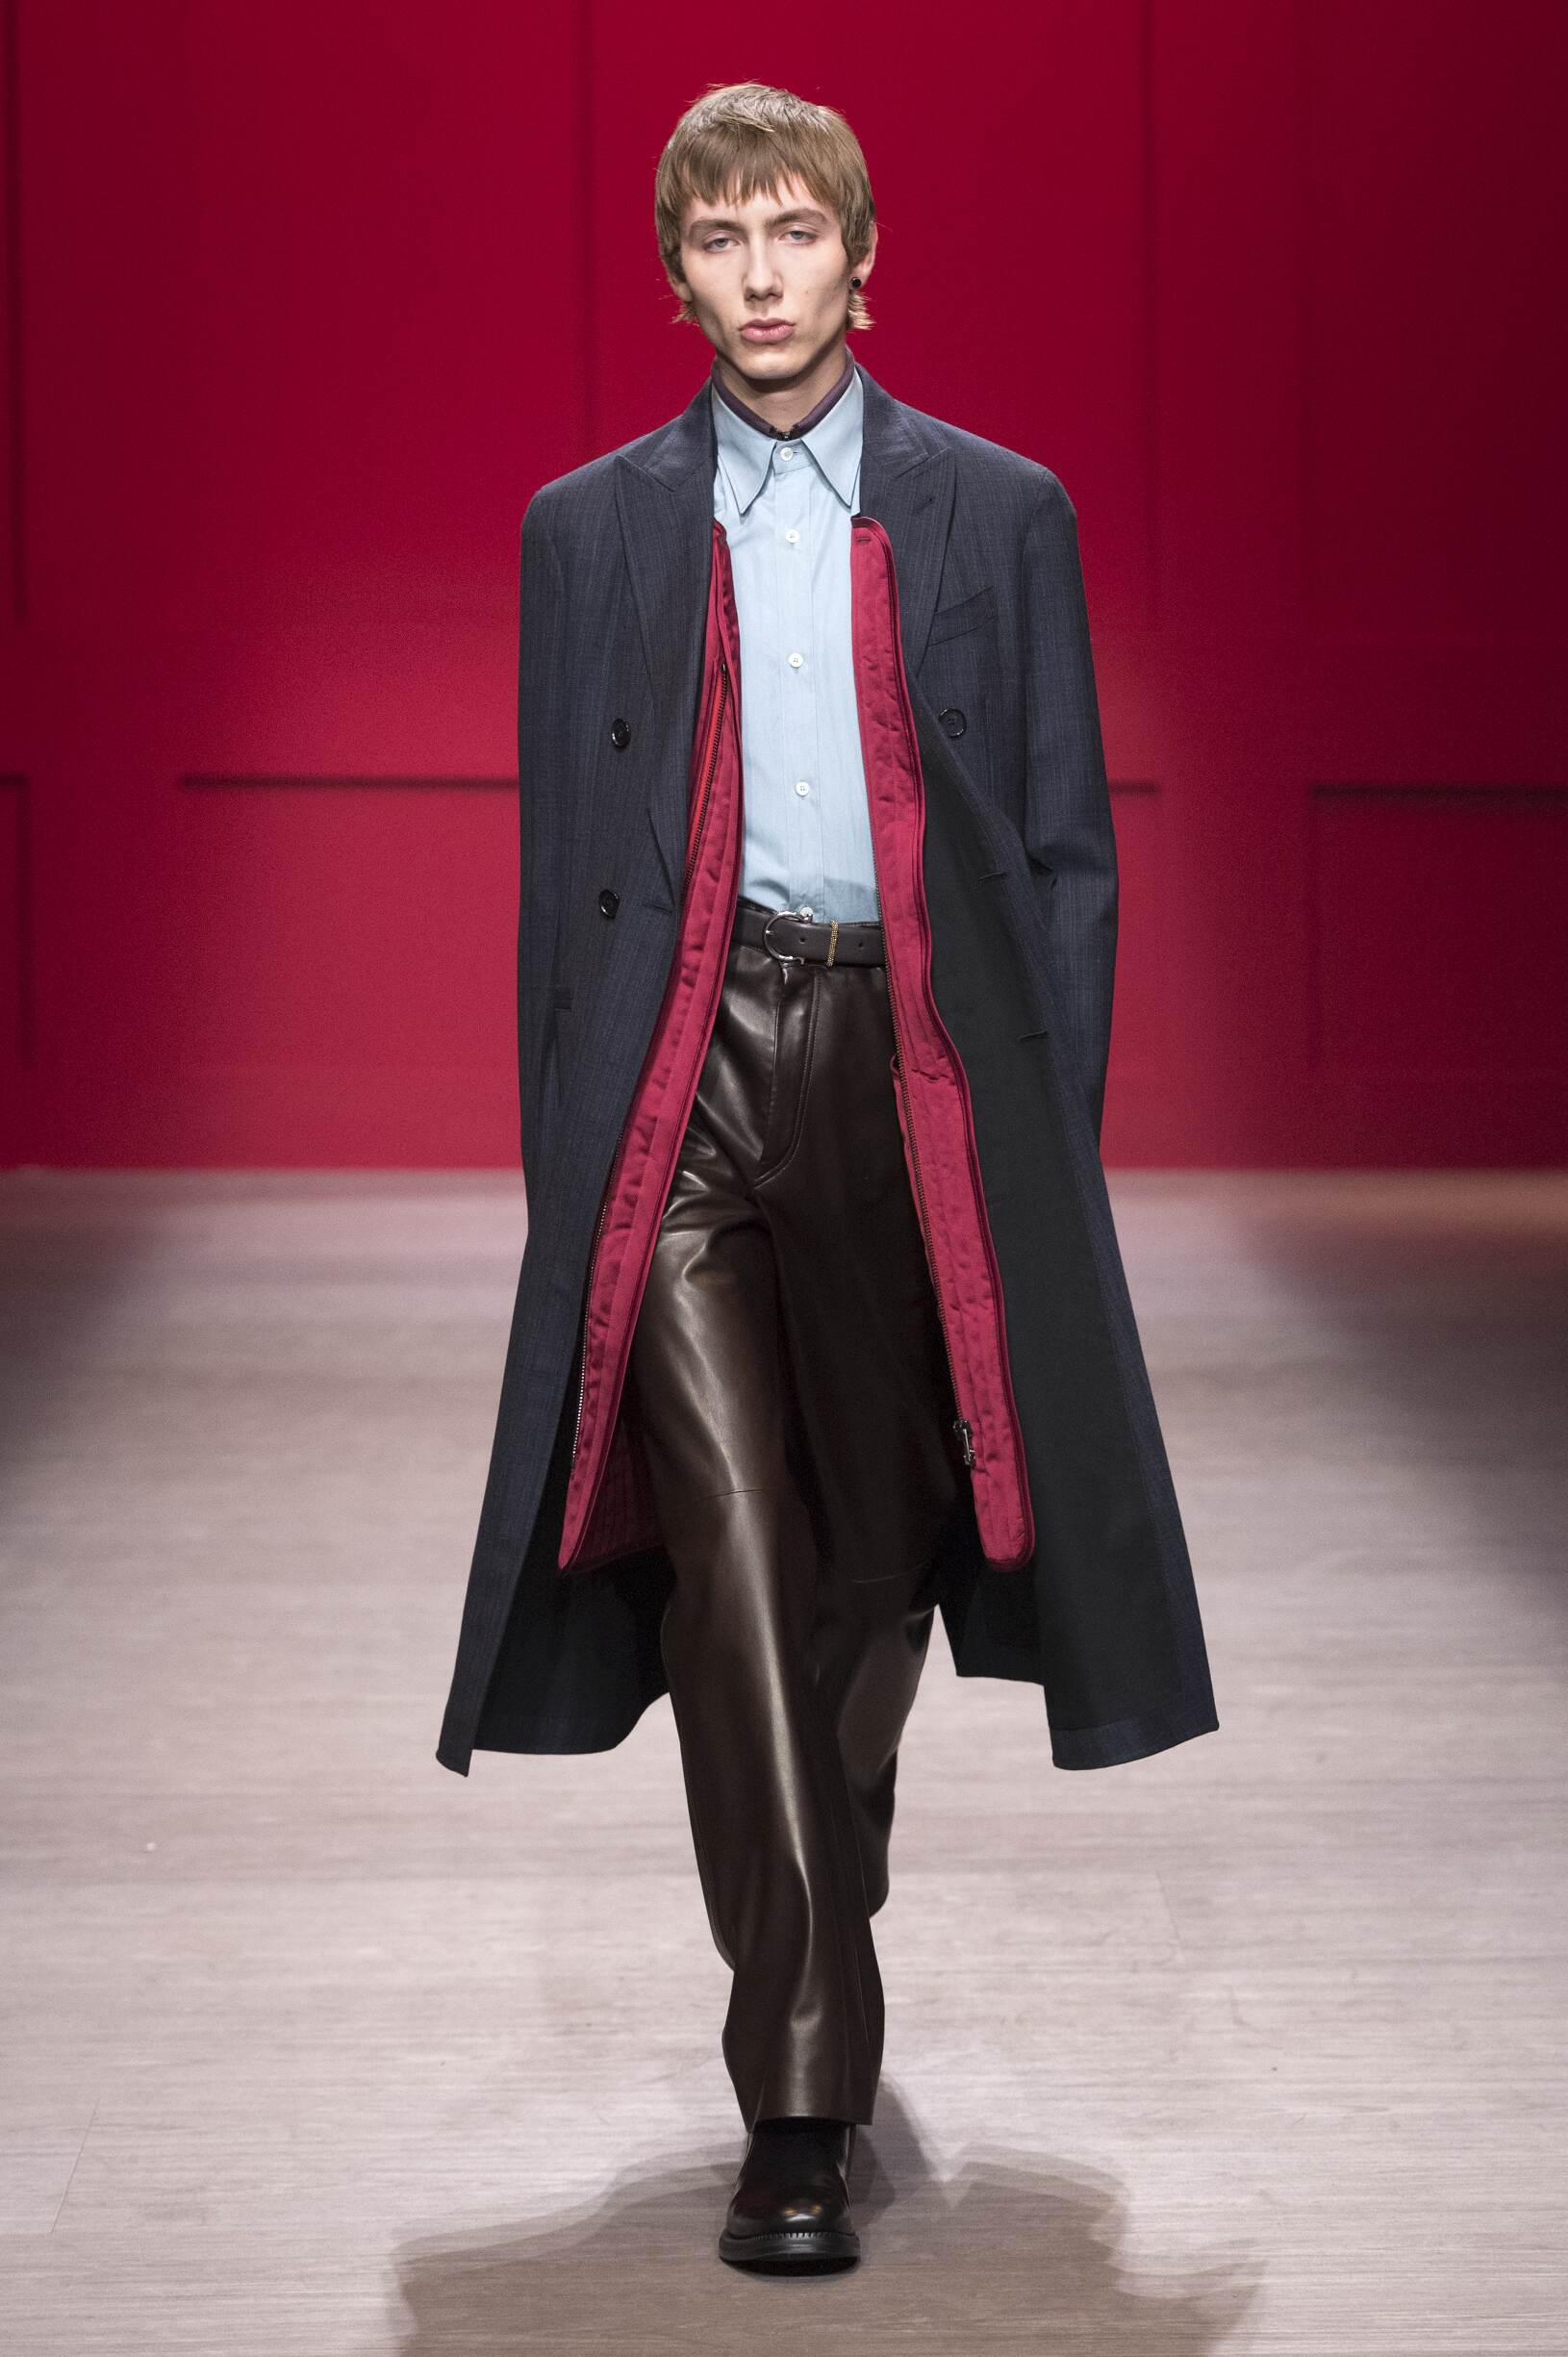 Man FW 2018-19 Salvatore Ferragamo Fashion Show Milan